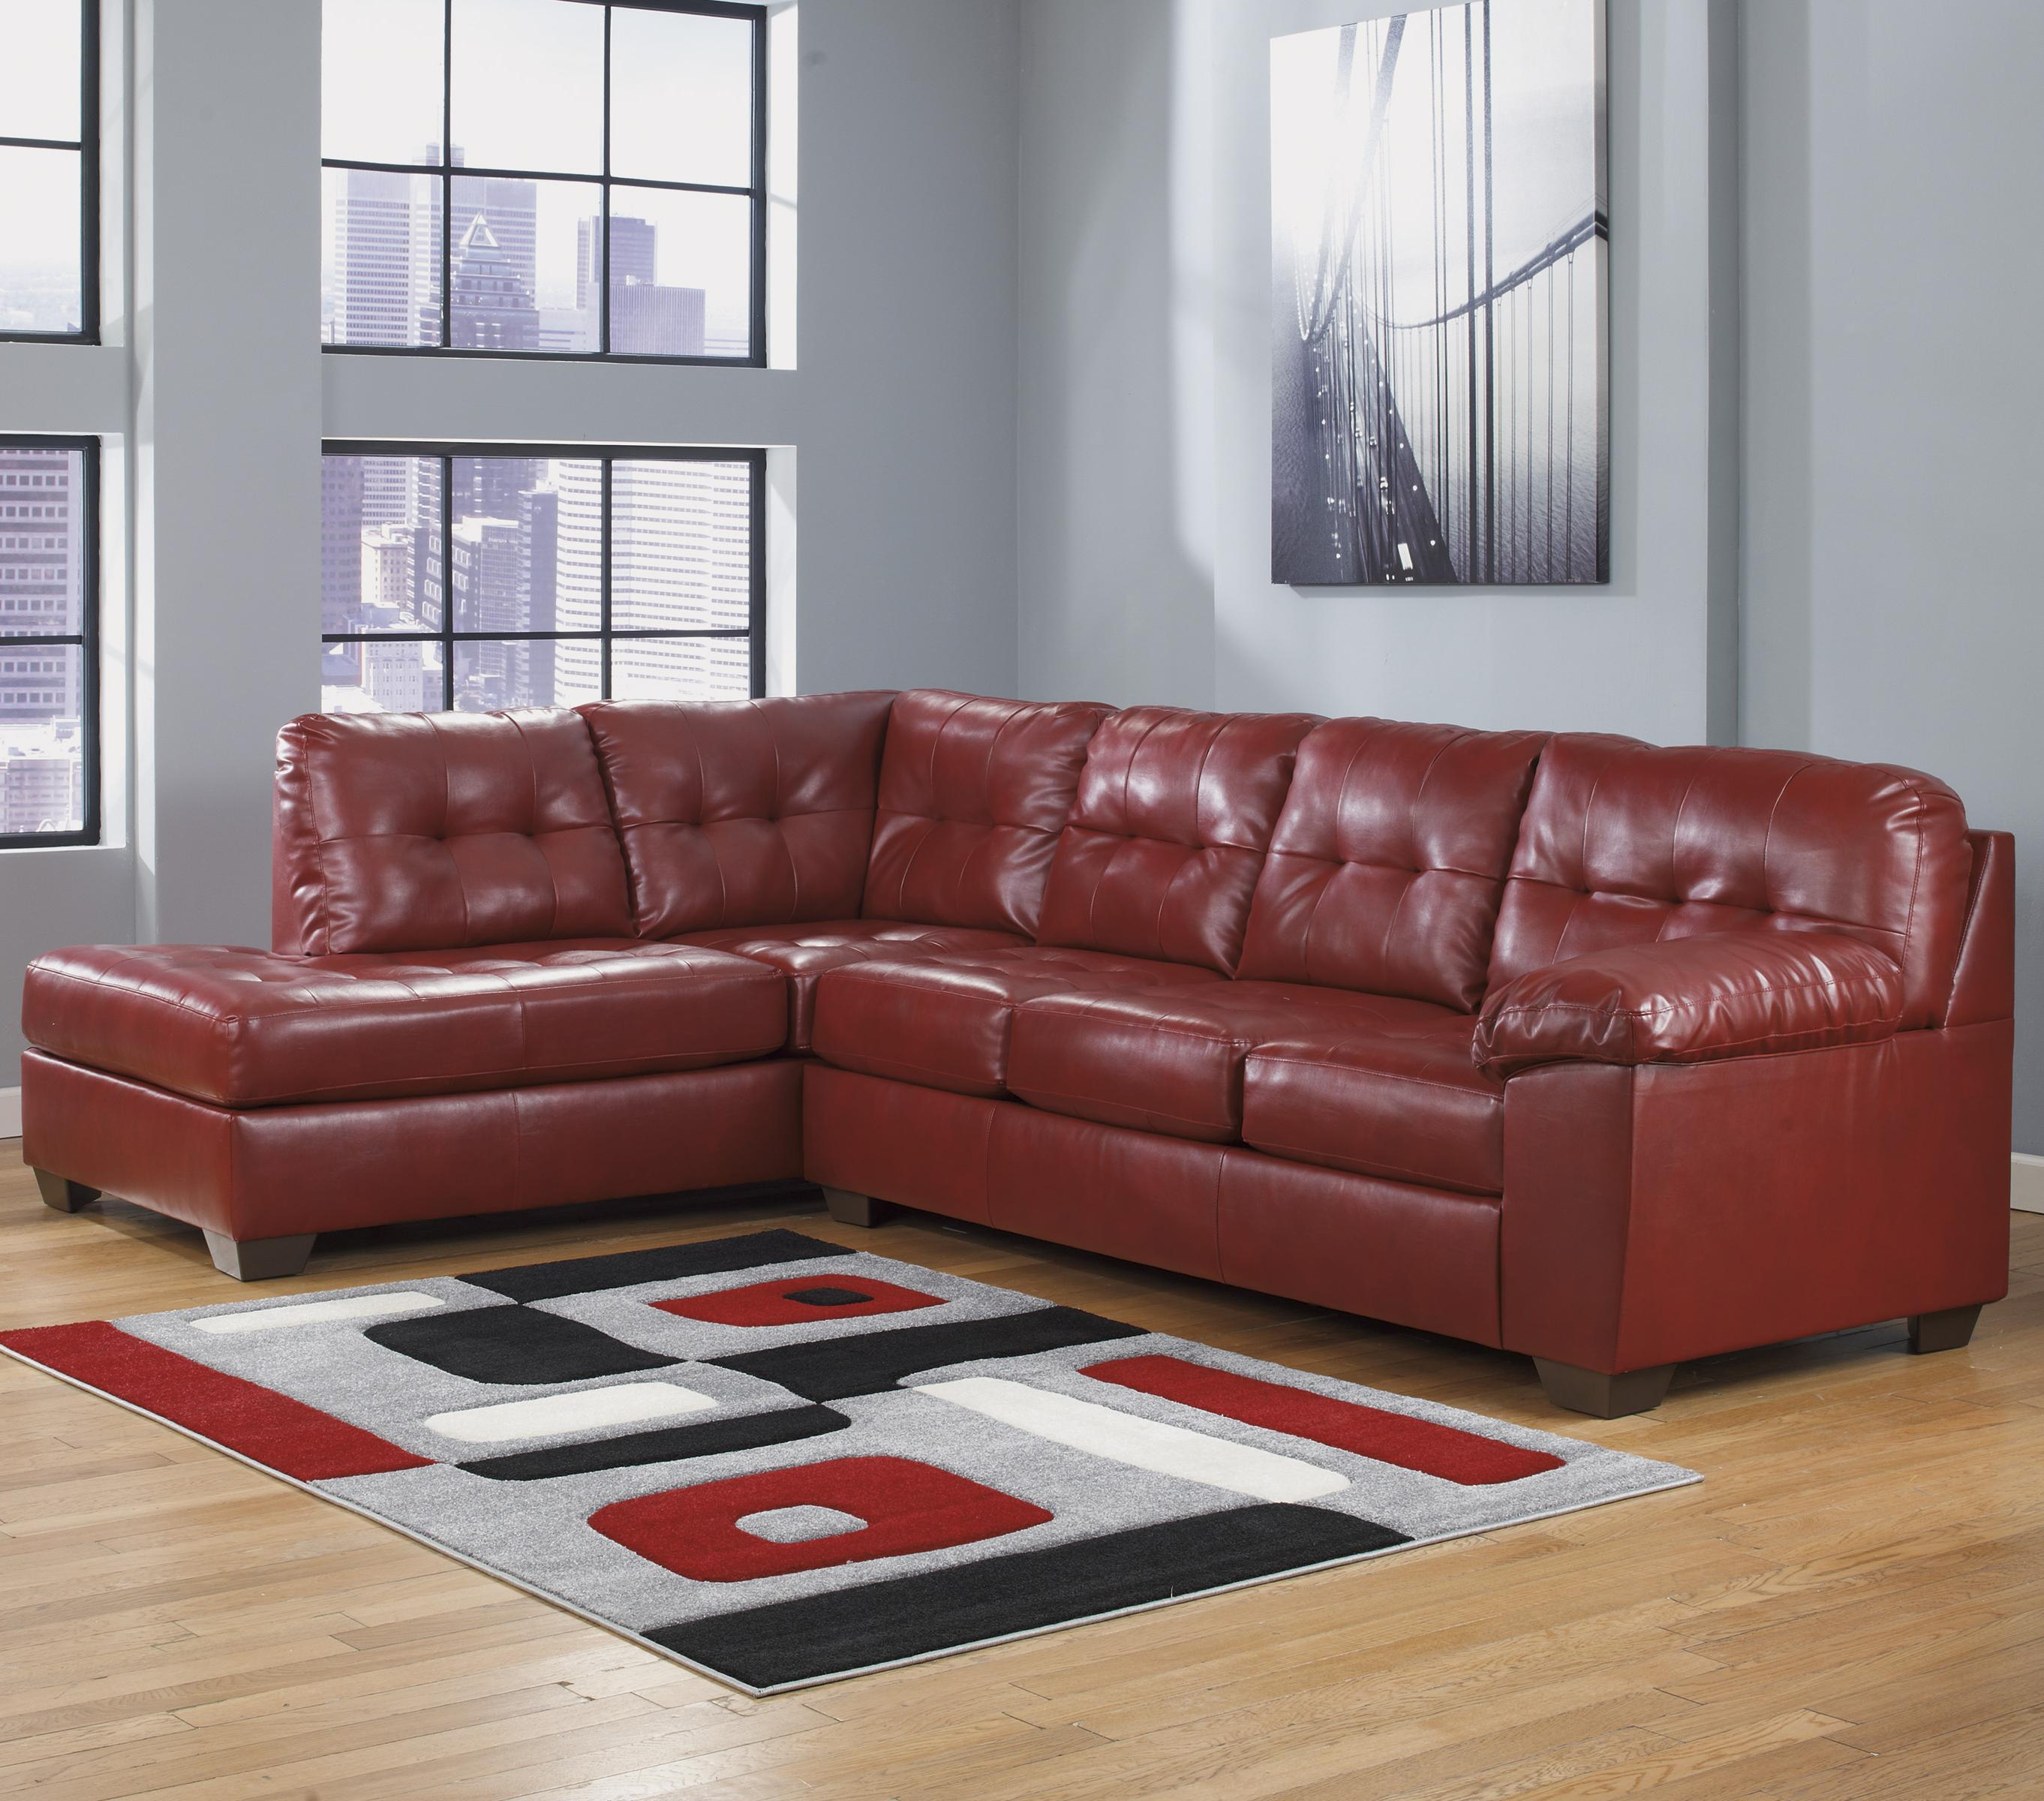 Signature Design by Ashley Alliston DuraBlend® - Salsa Sectional w/ Left Chaise - Item Number: 2010067+16